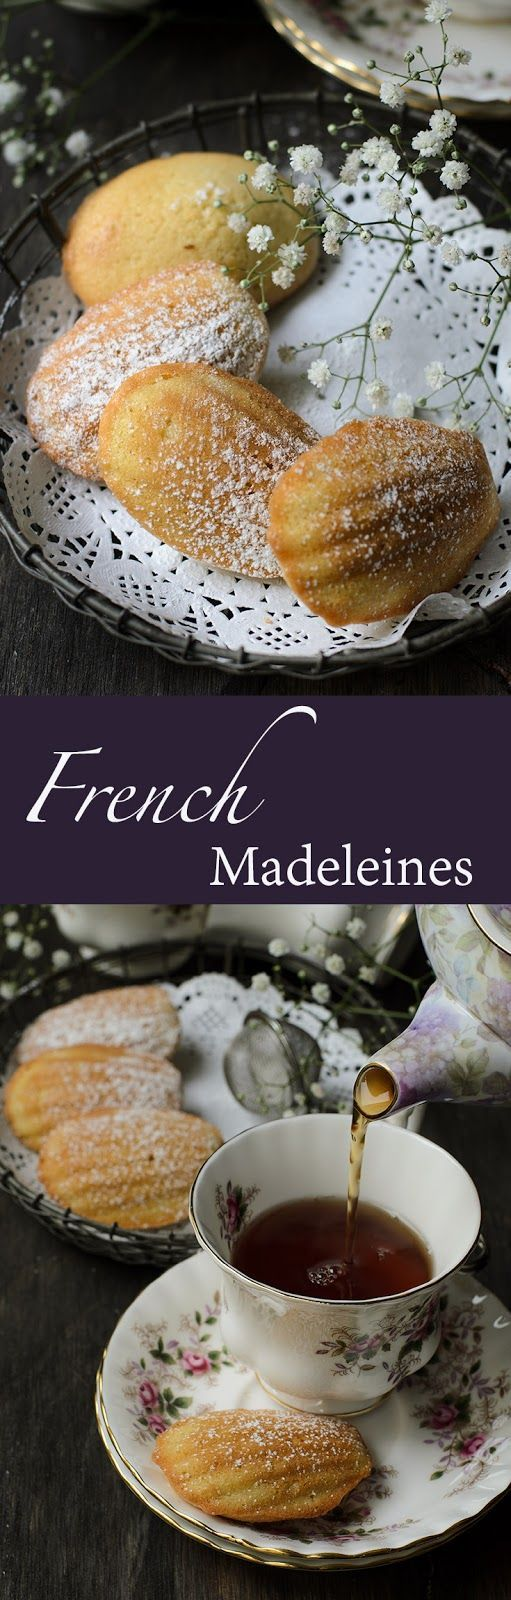 Experimenting in baking French classic Madeleines: simple bake versus Julia Child's